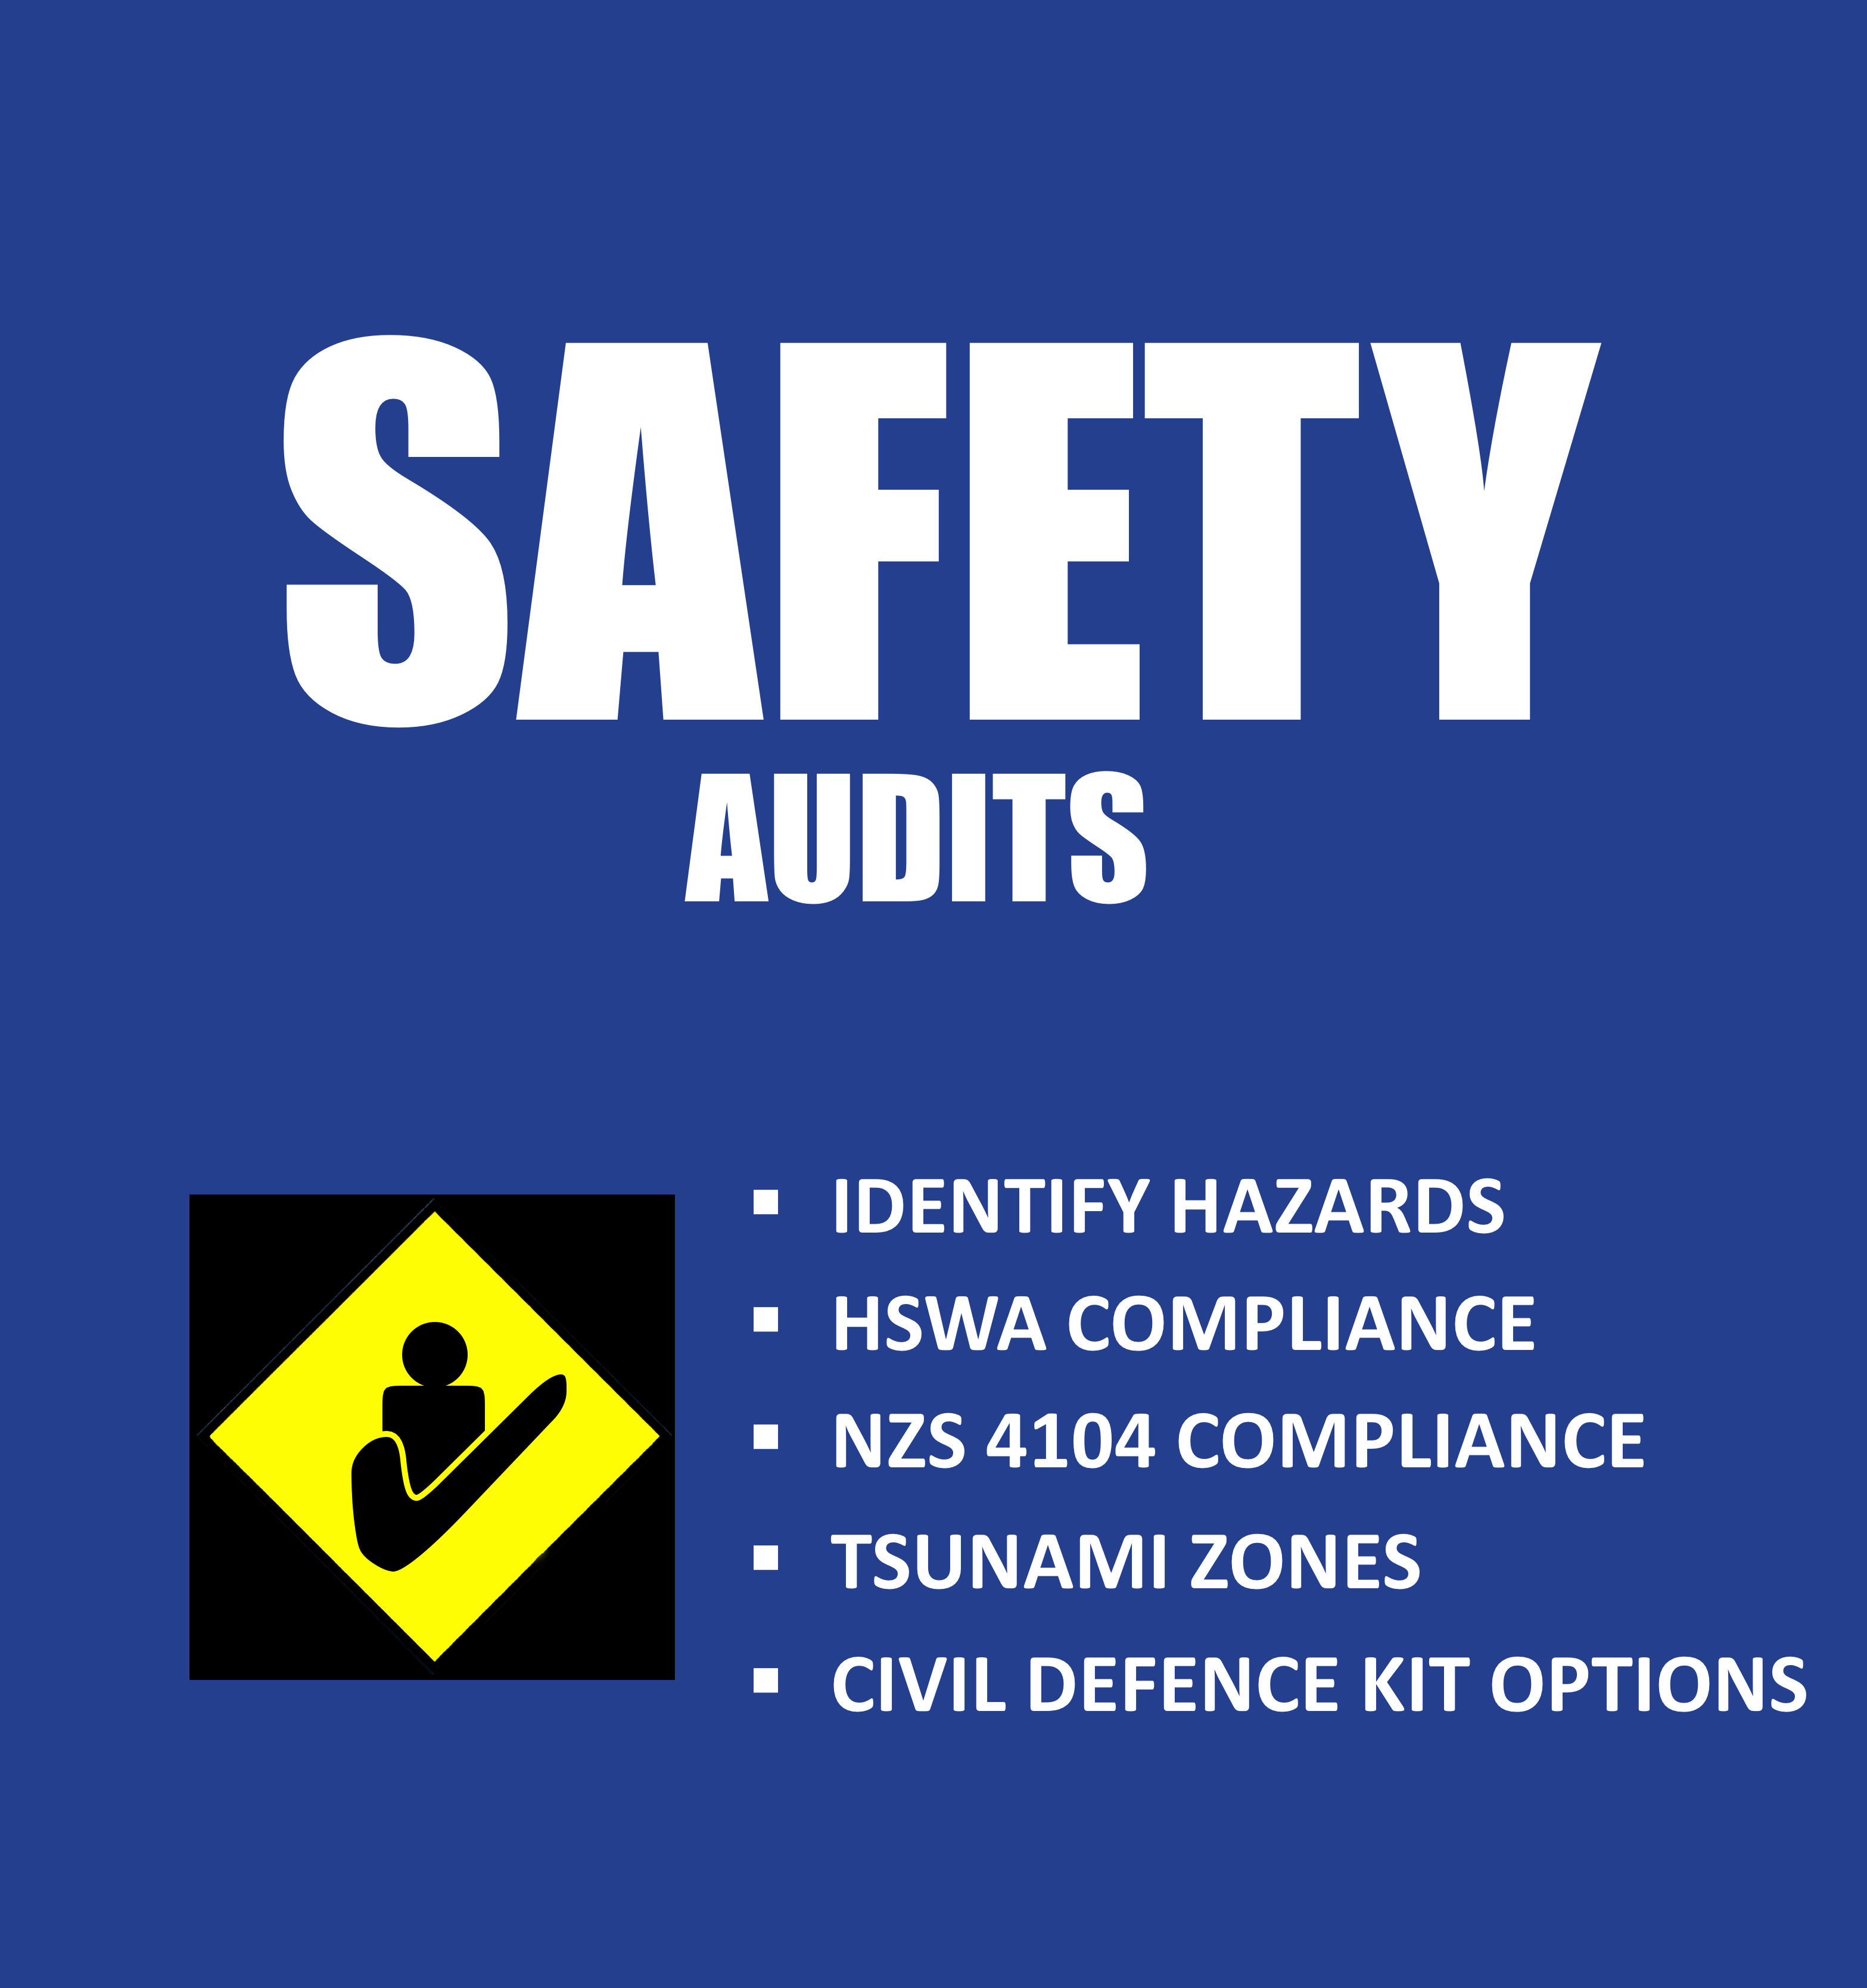 Identify Hazards, HSWA Compliance, NZS 4104 Compliance, Tsunami Zones, Civil Defence Kits Options